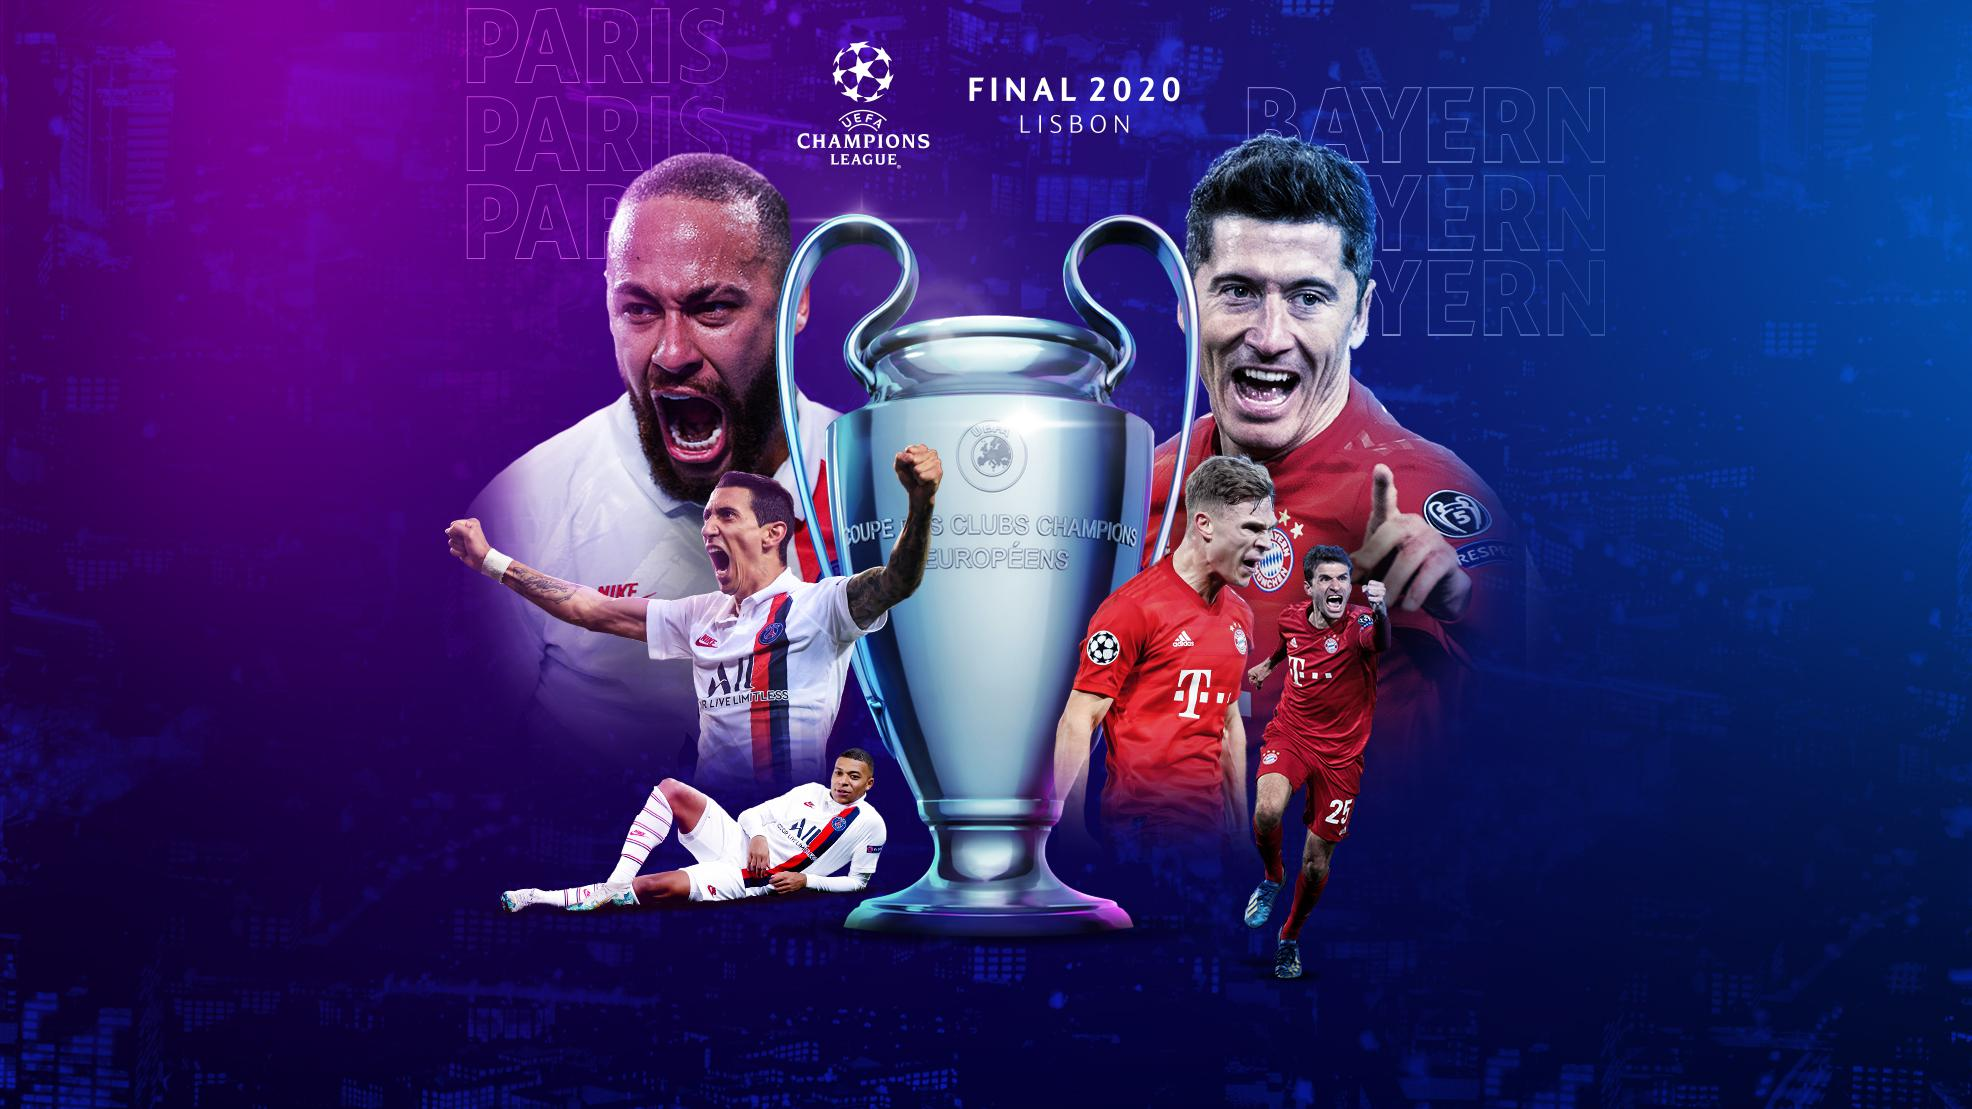 paris vs bayern champions league final preview where to watch team news form guide uefa champions league uefa com paris vs bayern champions league final